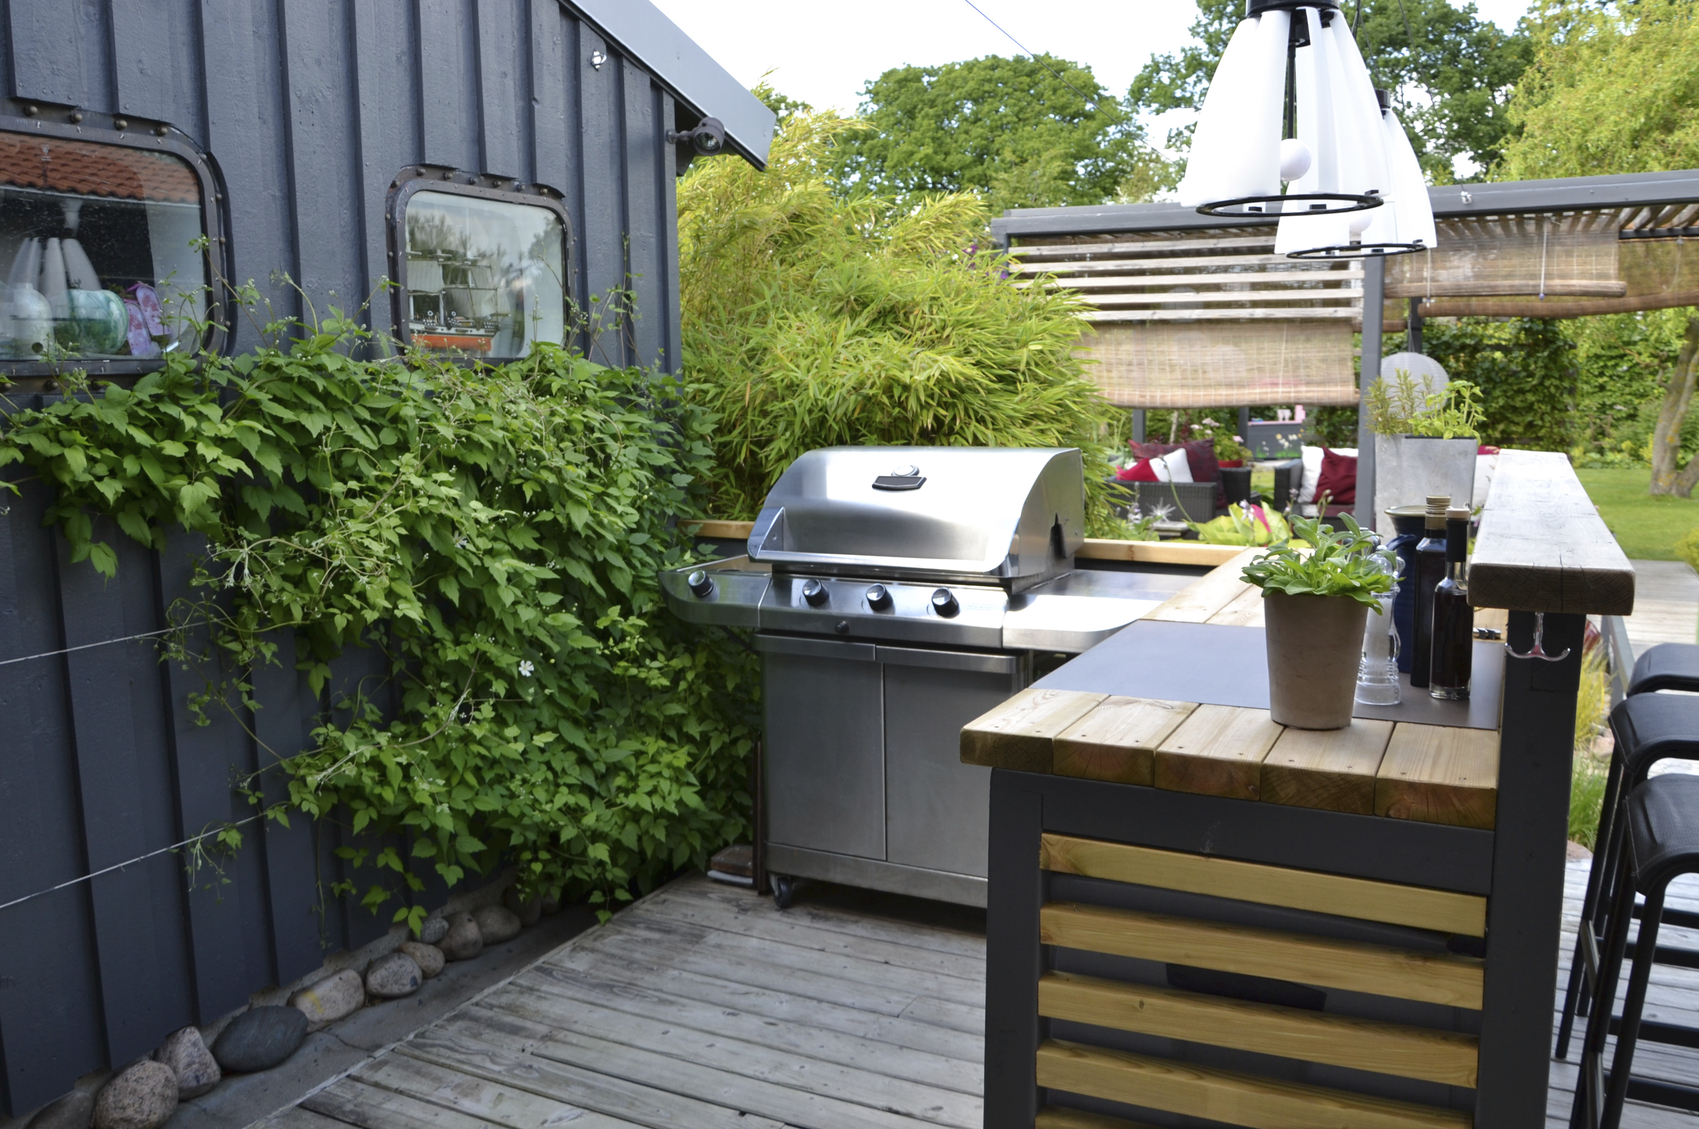 Outdoor kitchen with a stainless gas grill. image: eirasophie